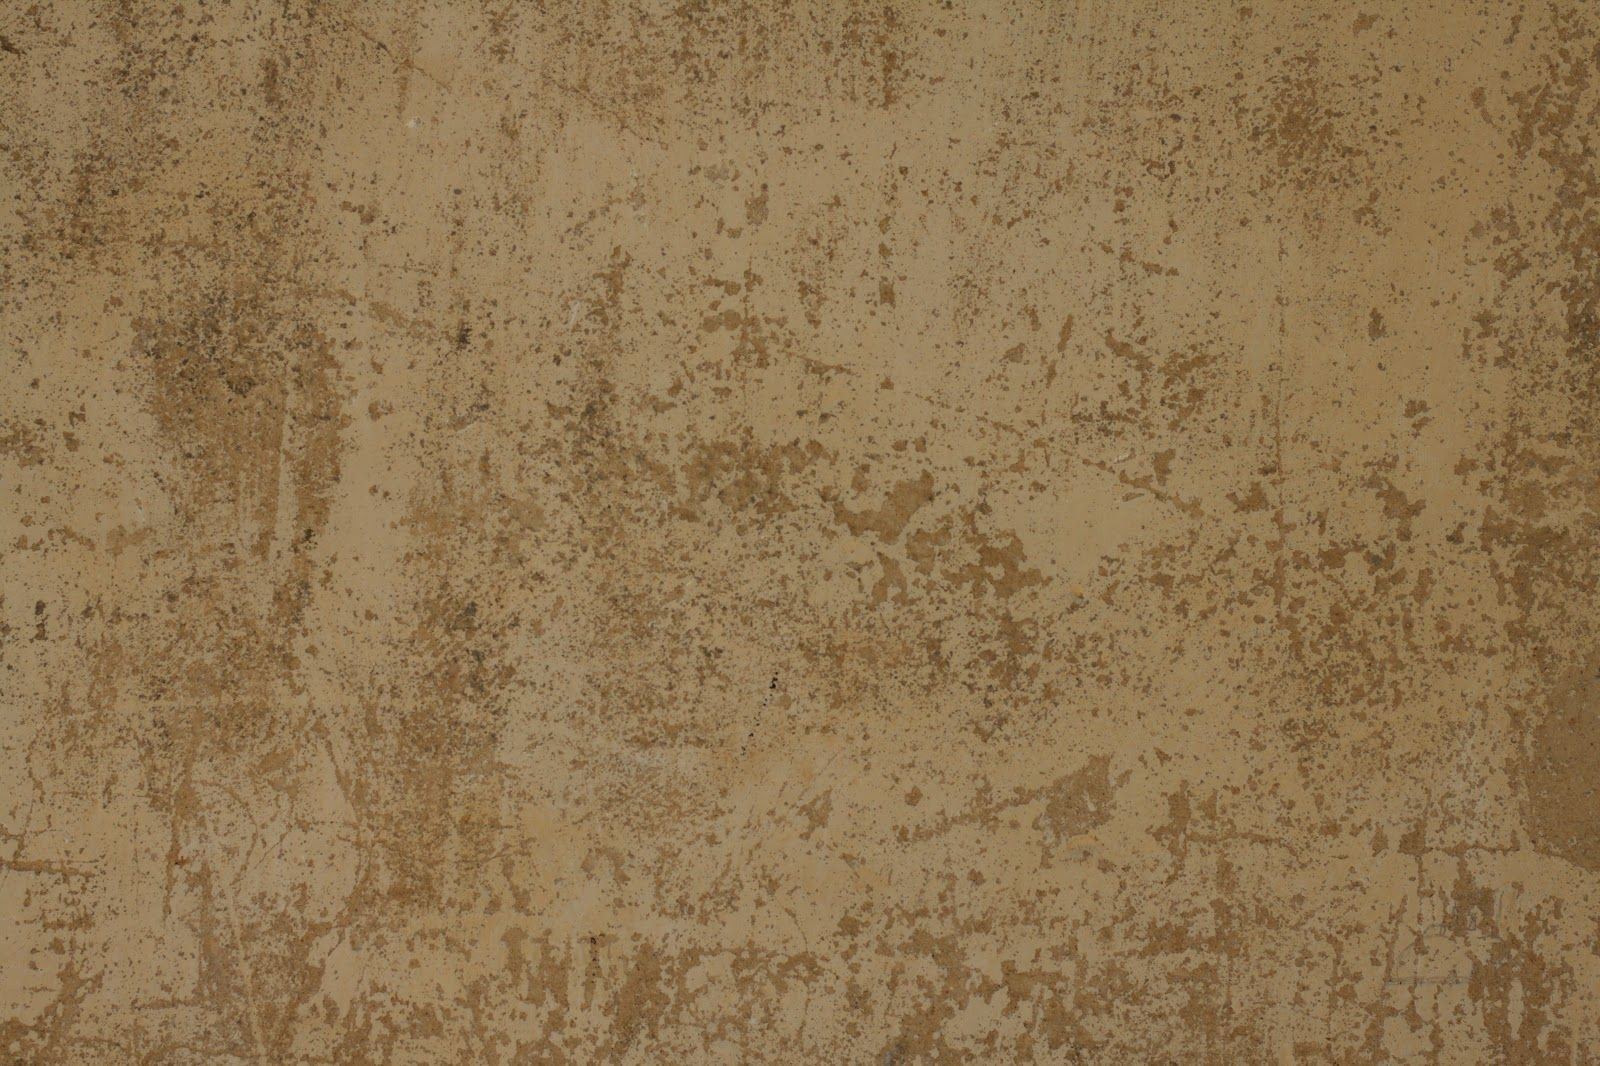 Brown Rough Stucco Plaster Wall Paper Texture 1600 1066 Texture Rock Stone Micro